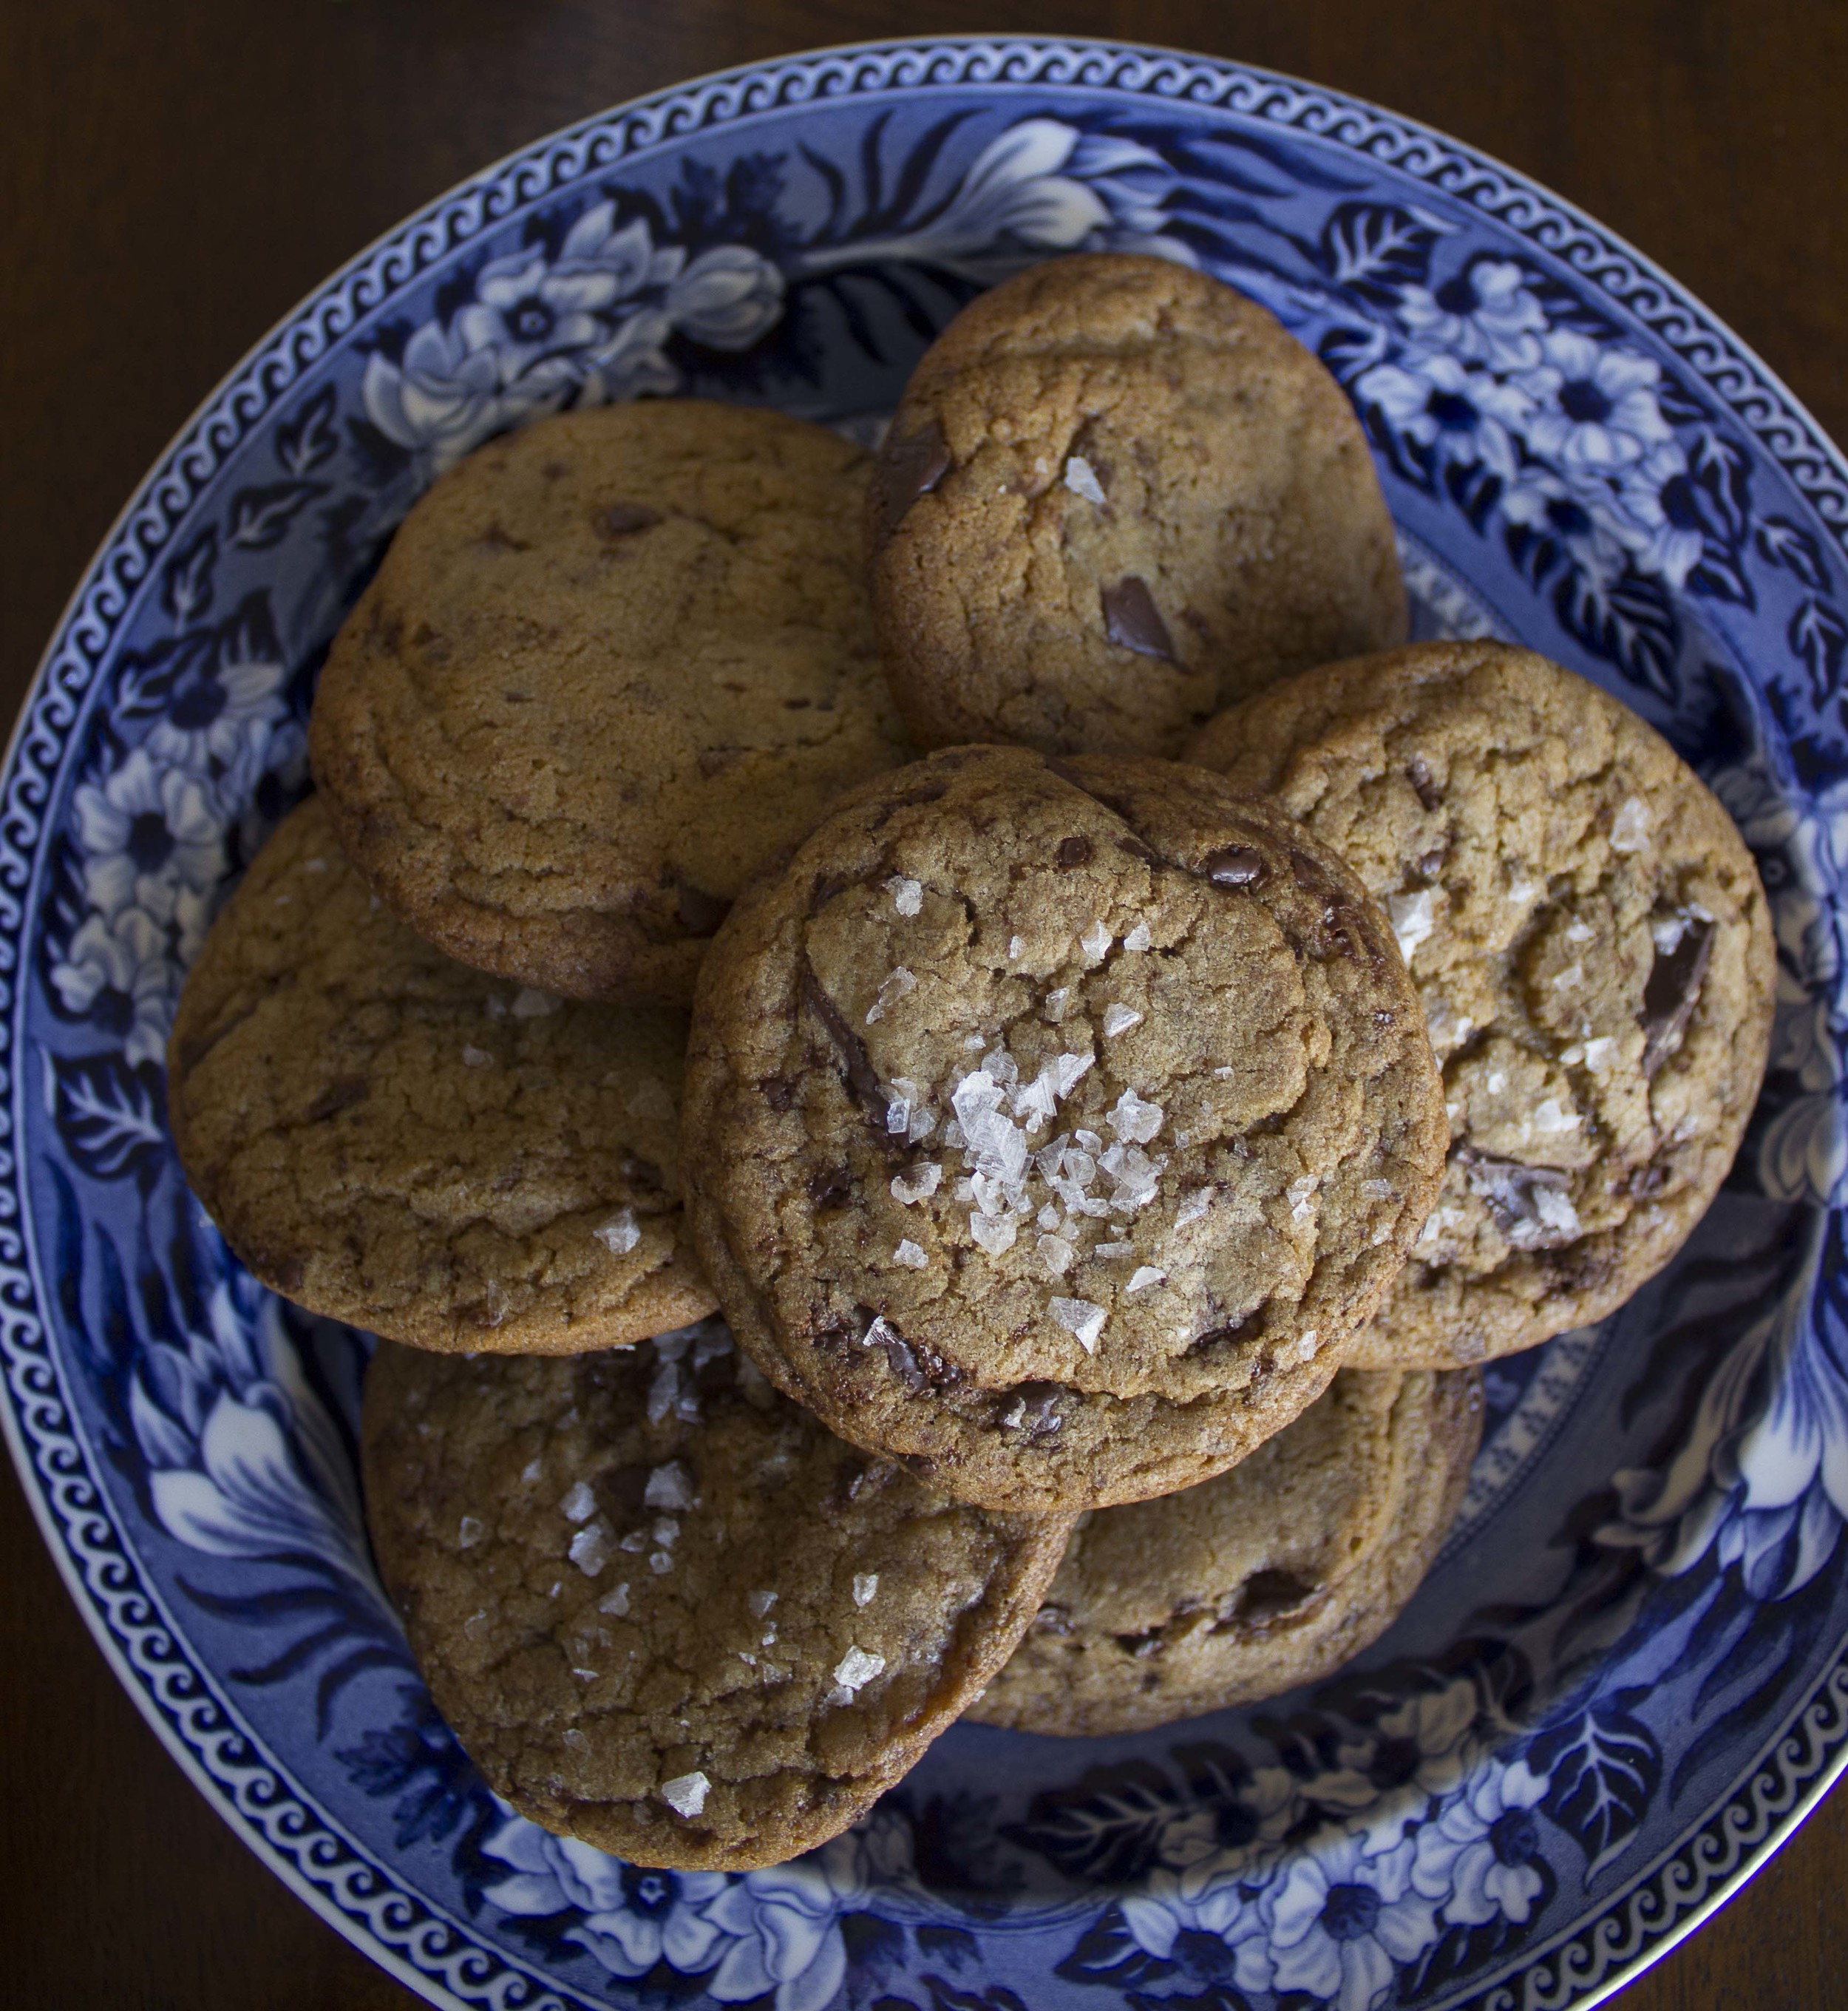 Browned Butter Chocolate Chip Cookie  | Image:  Laura Messersmith